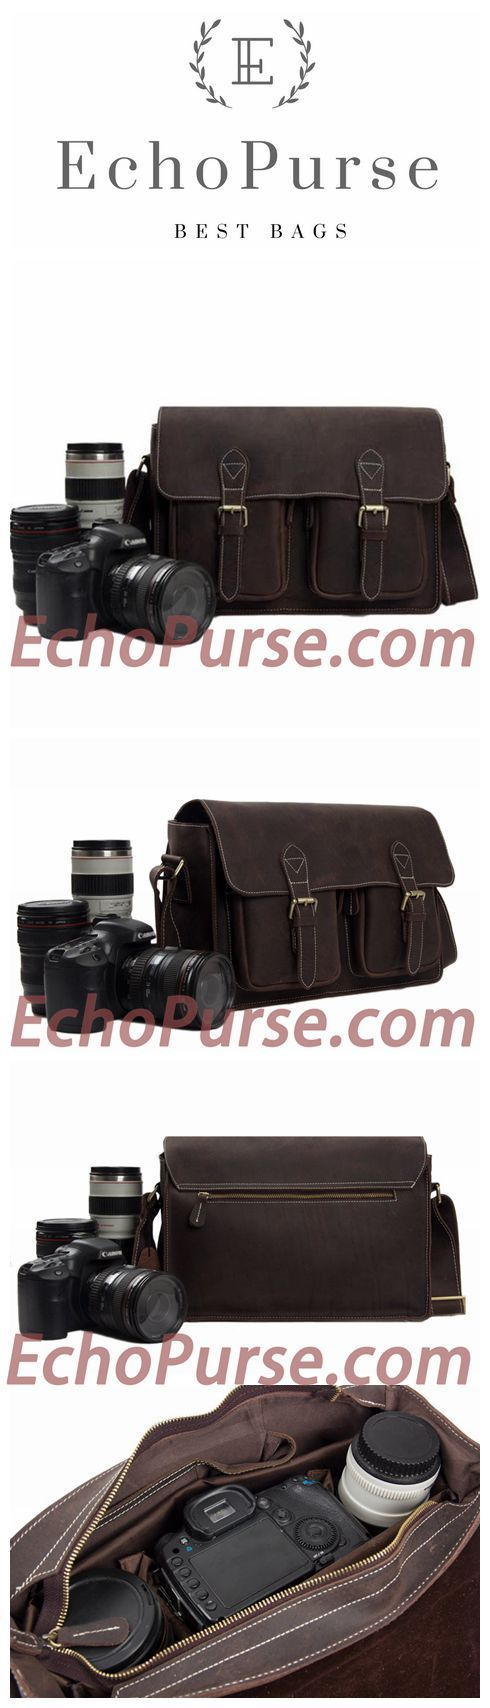 Antique Genuine Leather DSLR Camera Pouch, Messenger Bag, Camera Shoulder Bag 6915